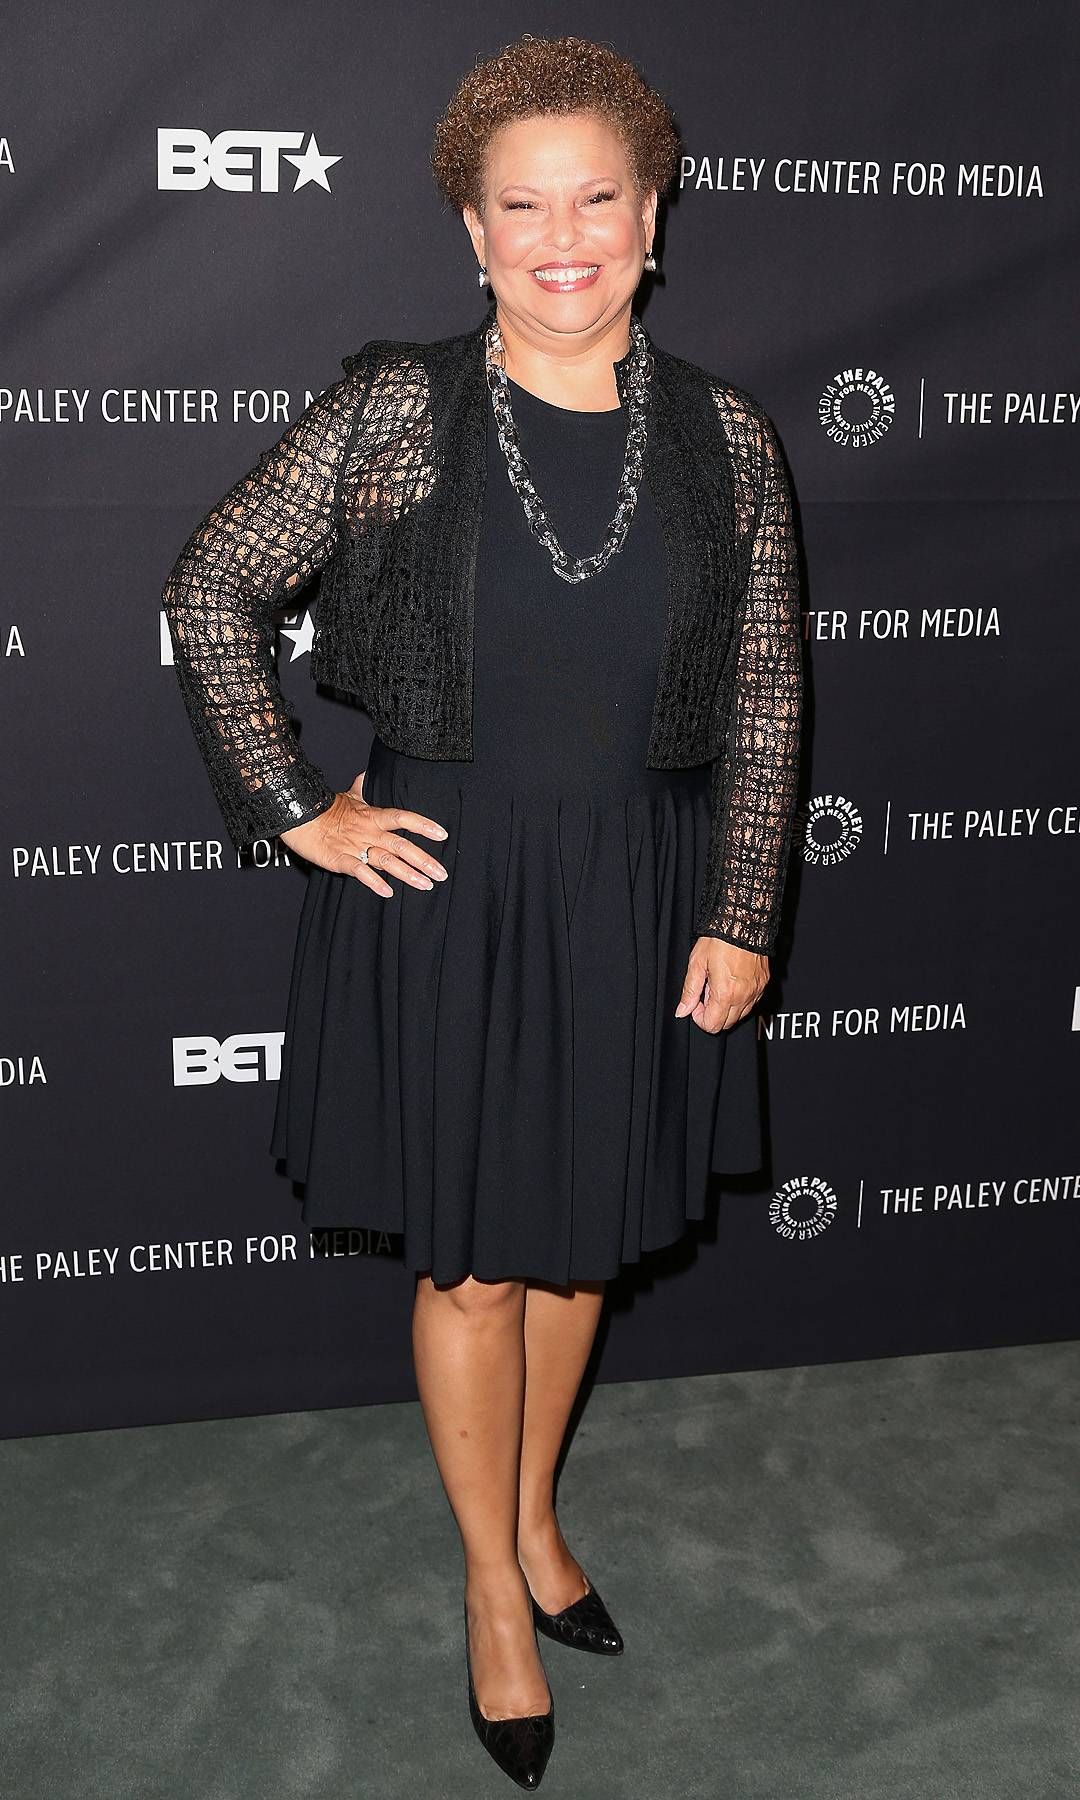 CEO Spotlight - Chairman and CEO of BET Networks Debra Lee made a grand appearance on the carpet as well.  (Photo: Frederick M. Brown/Getty Images)